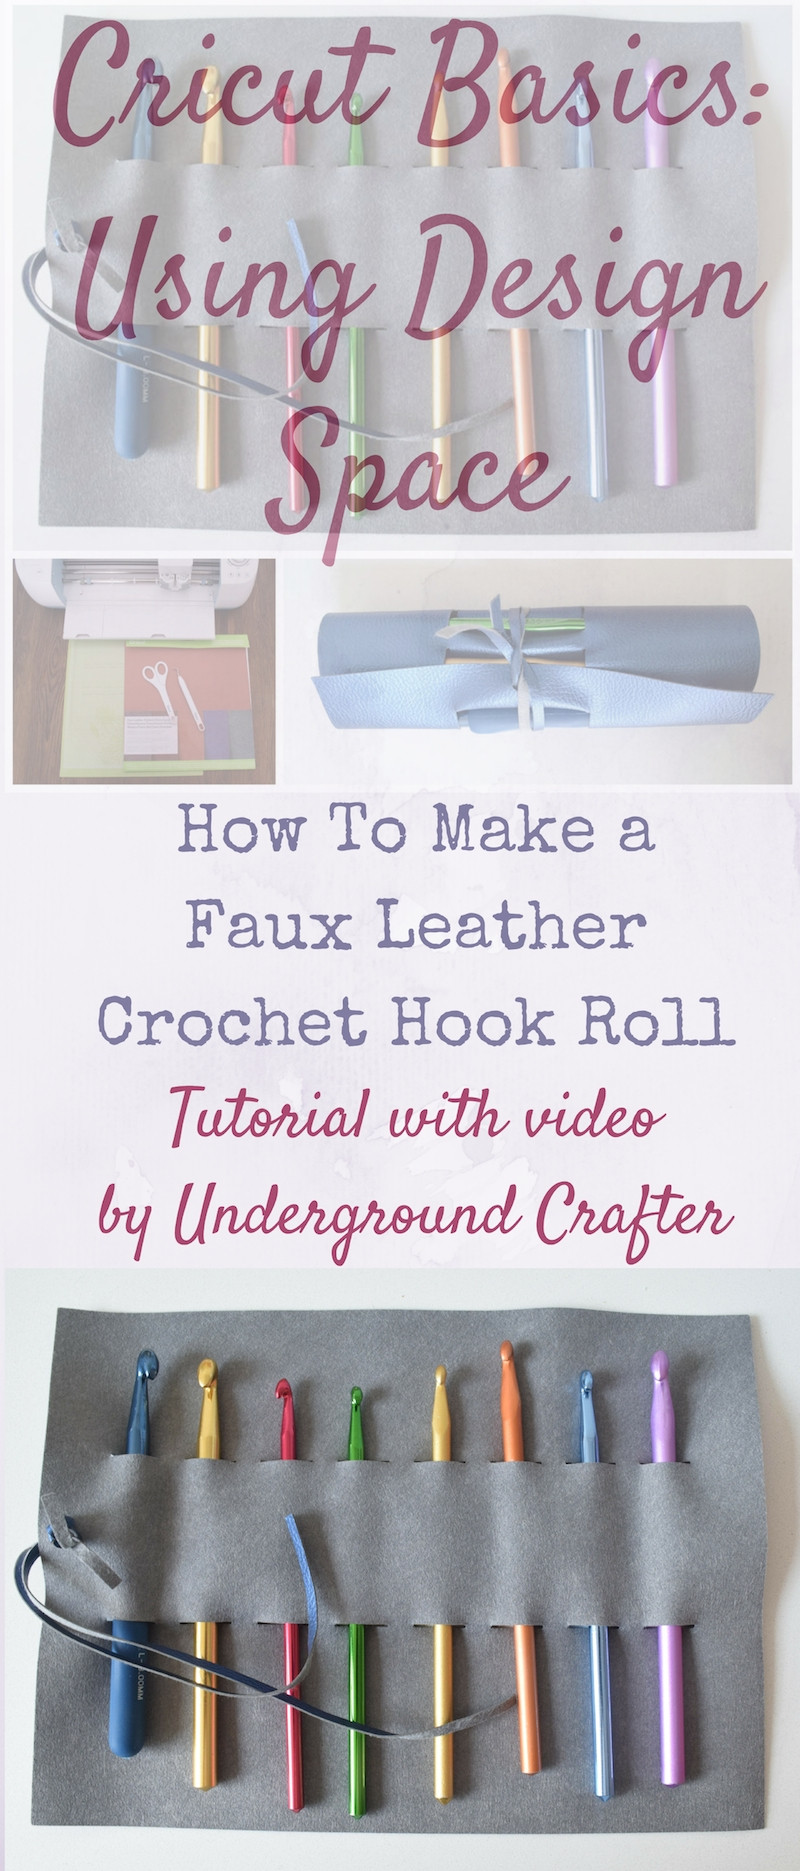 Learn to Crochet Kits Unique How to Make A Faux Leather Crochet Hook Roll with Cricut Of Amazing 49 Photos Learn to Crochet Kits